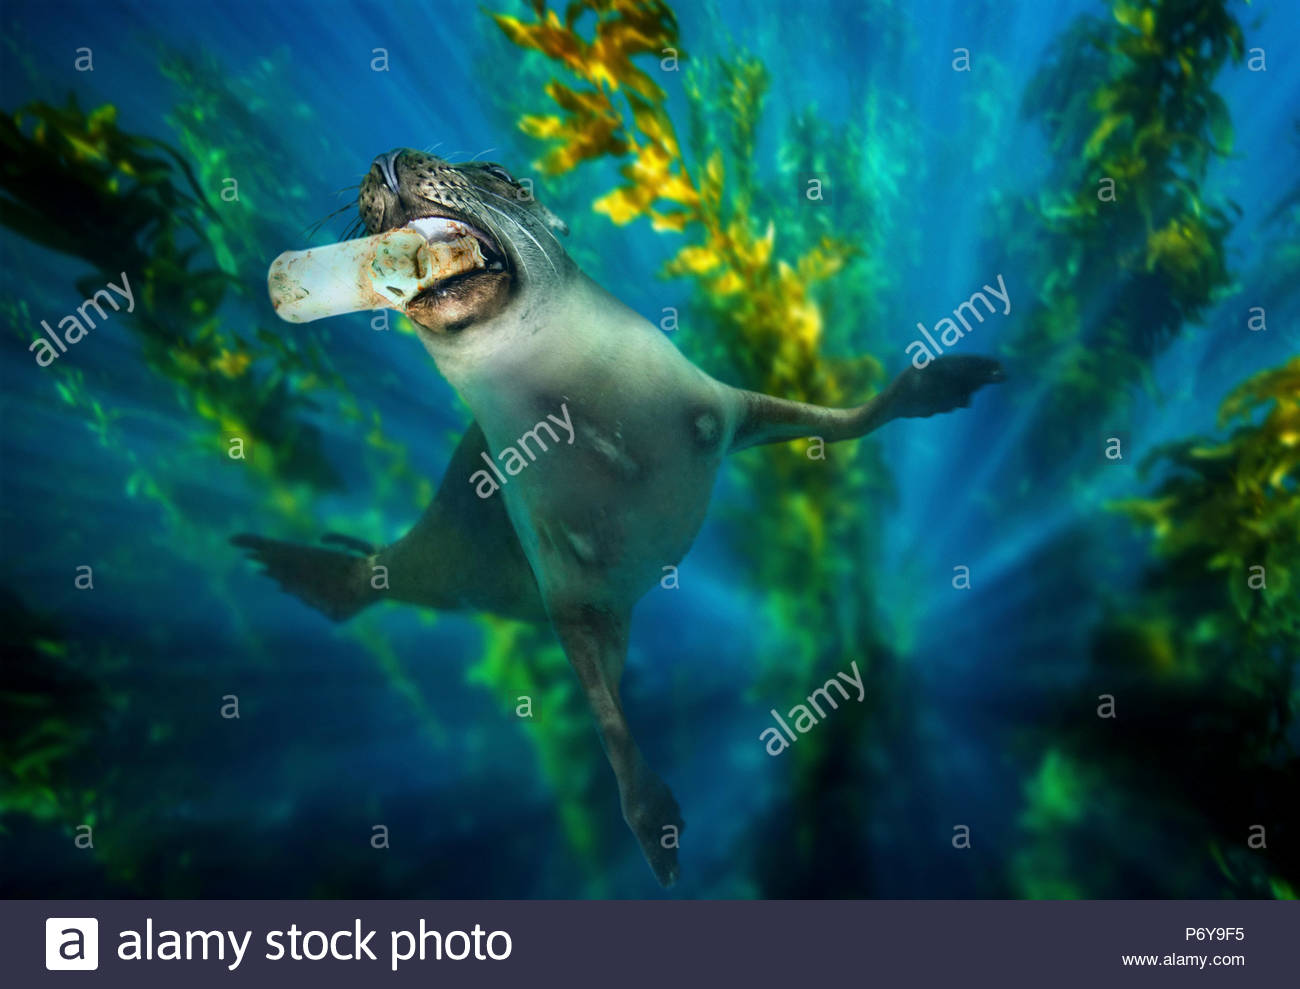 Sea lion nibbling a plastic bottle underwater. - Stock Image